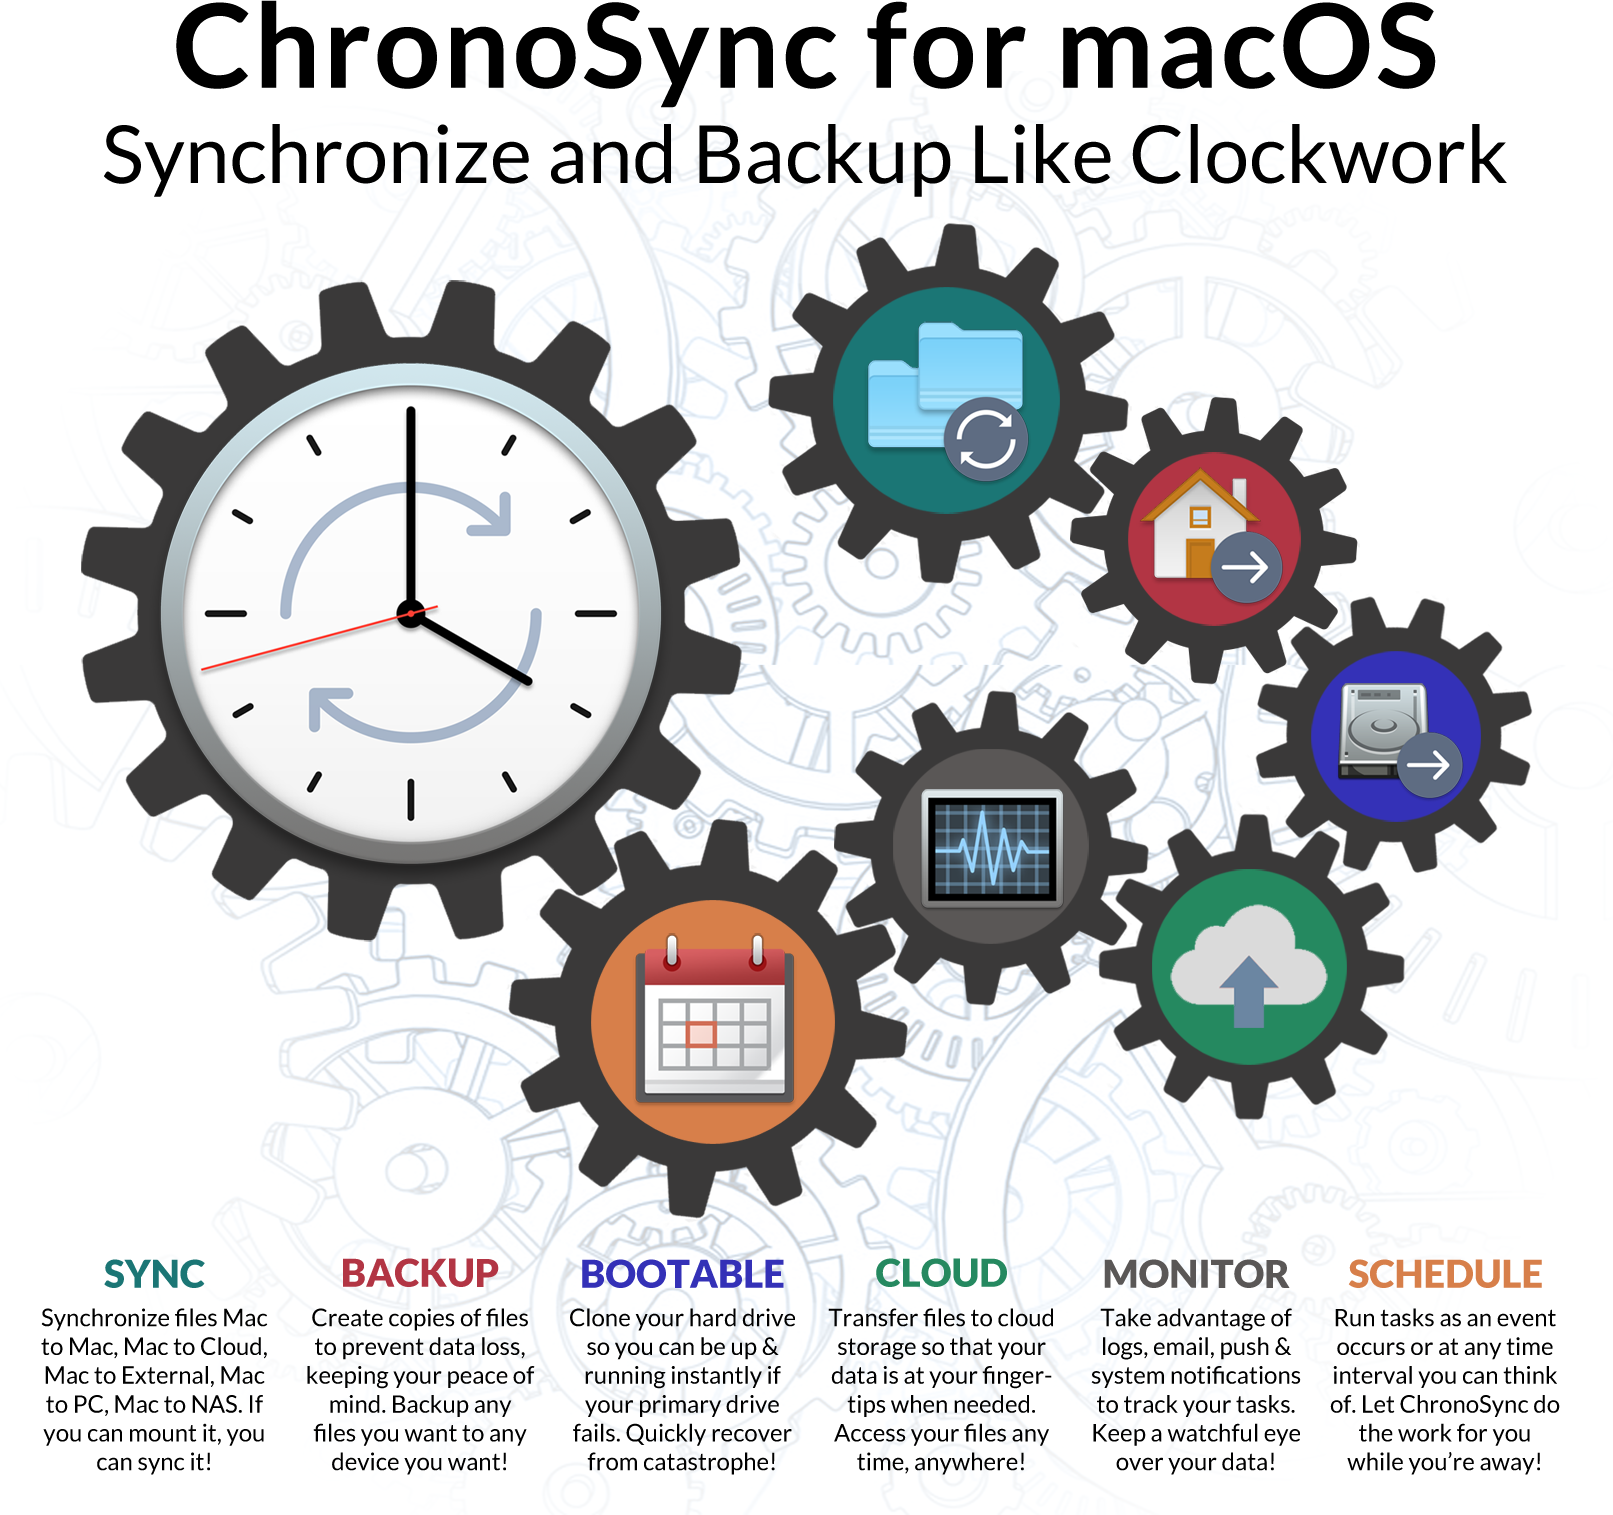 Synchronize and Backup your Mac